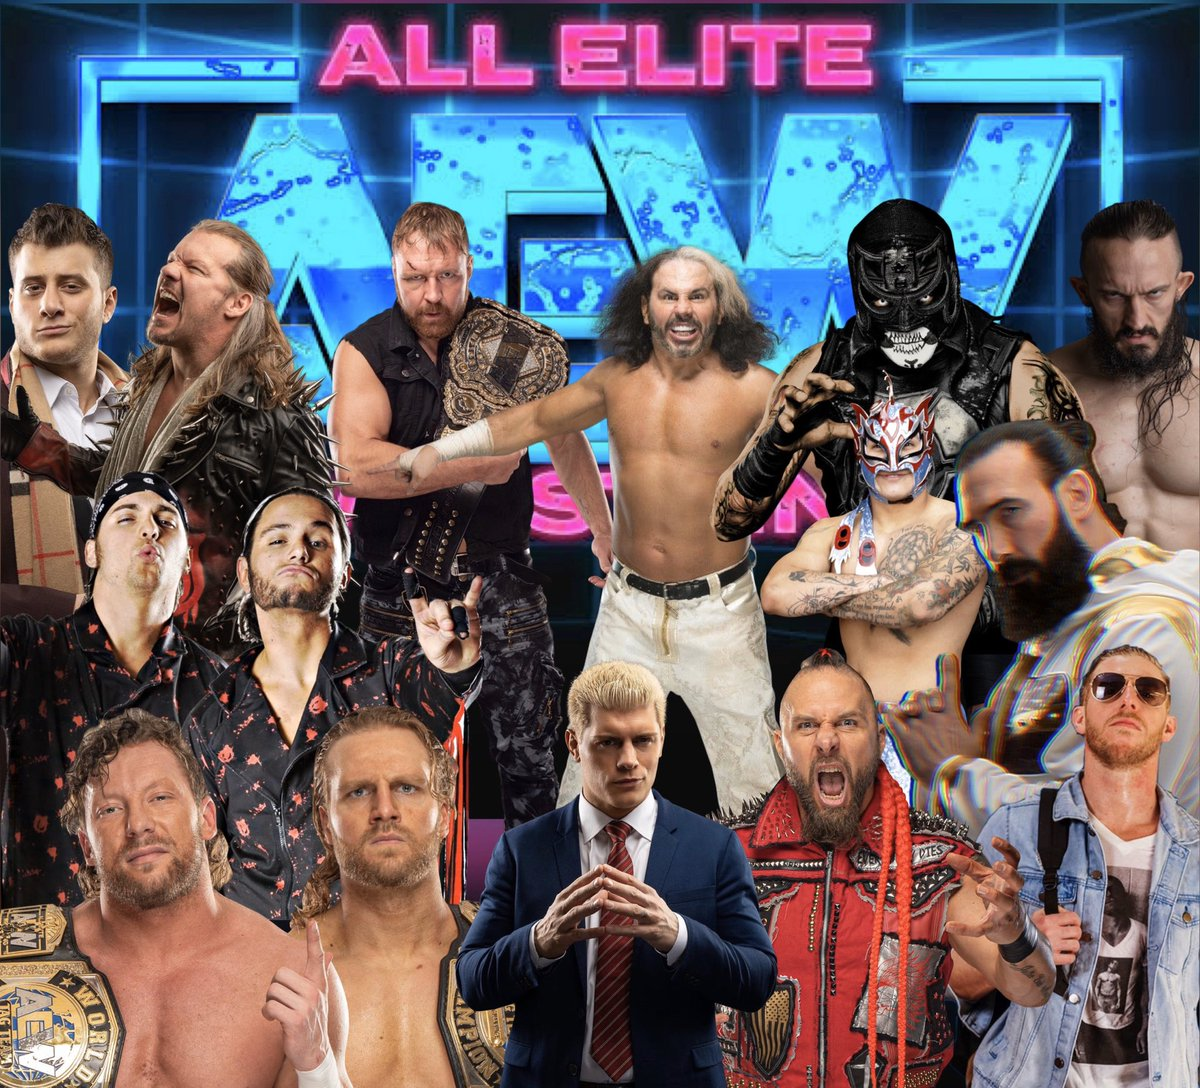 My custom made @AEWrestling wallpaper that I made with some of my favourite stars from @AEWonTNT #AEWDyamite #AEWonTNT #AEW